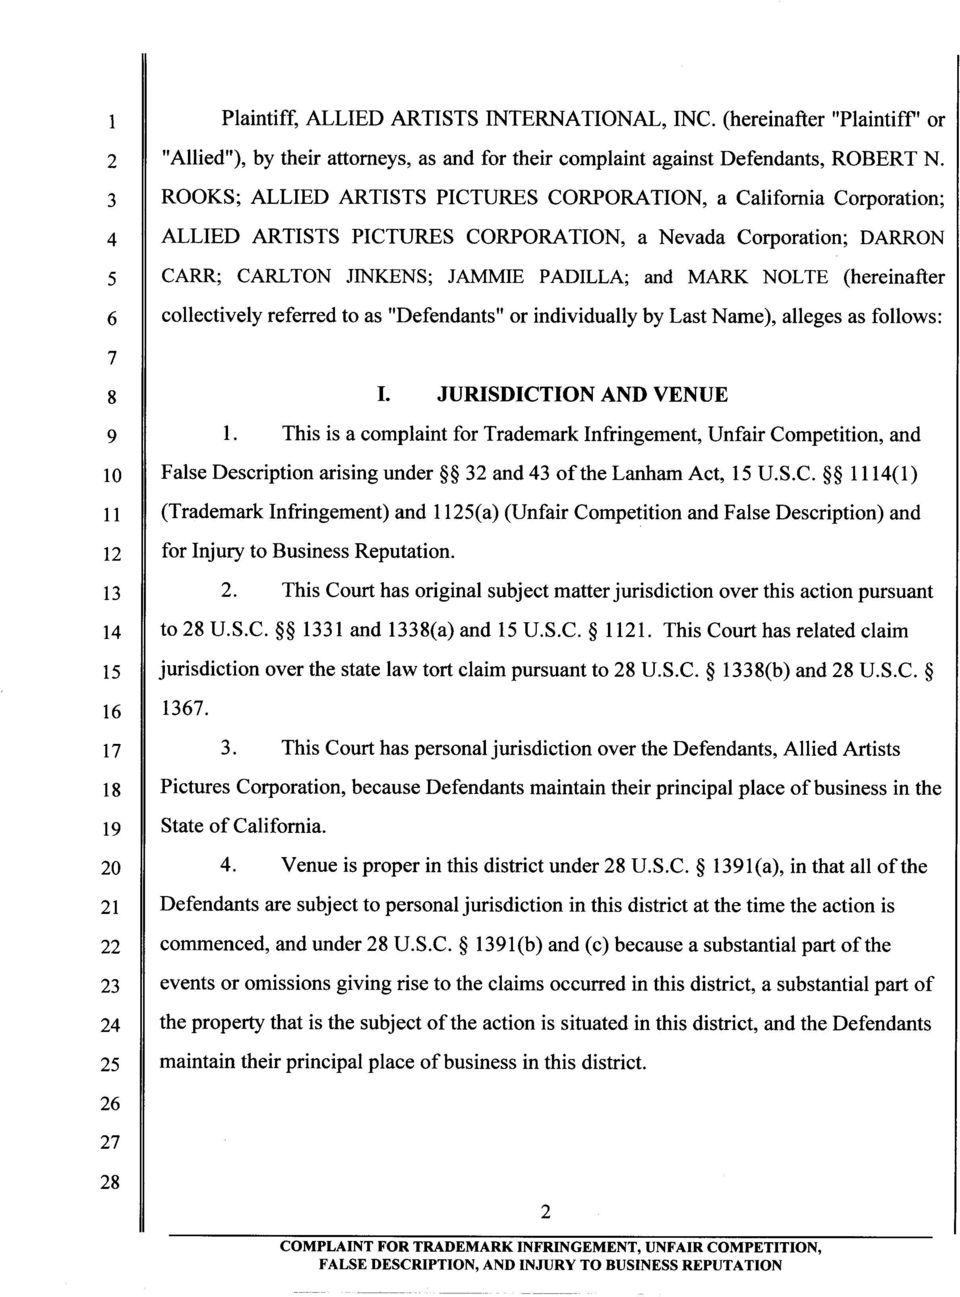 "(hereinafter 6 collectively referred to as ""Defendants"" or individually by Last Name), alleges as follows: 10 False Description arising under 32 and 43 of the Lanham Act, 15 U.S.C."